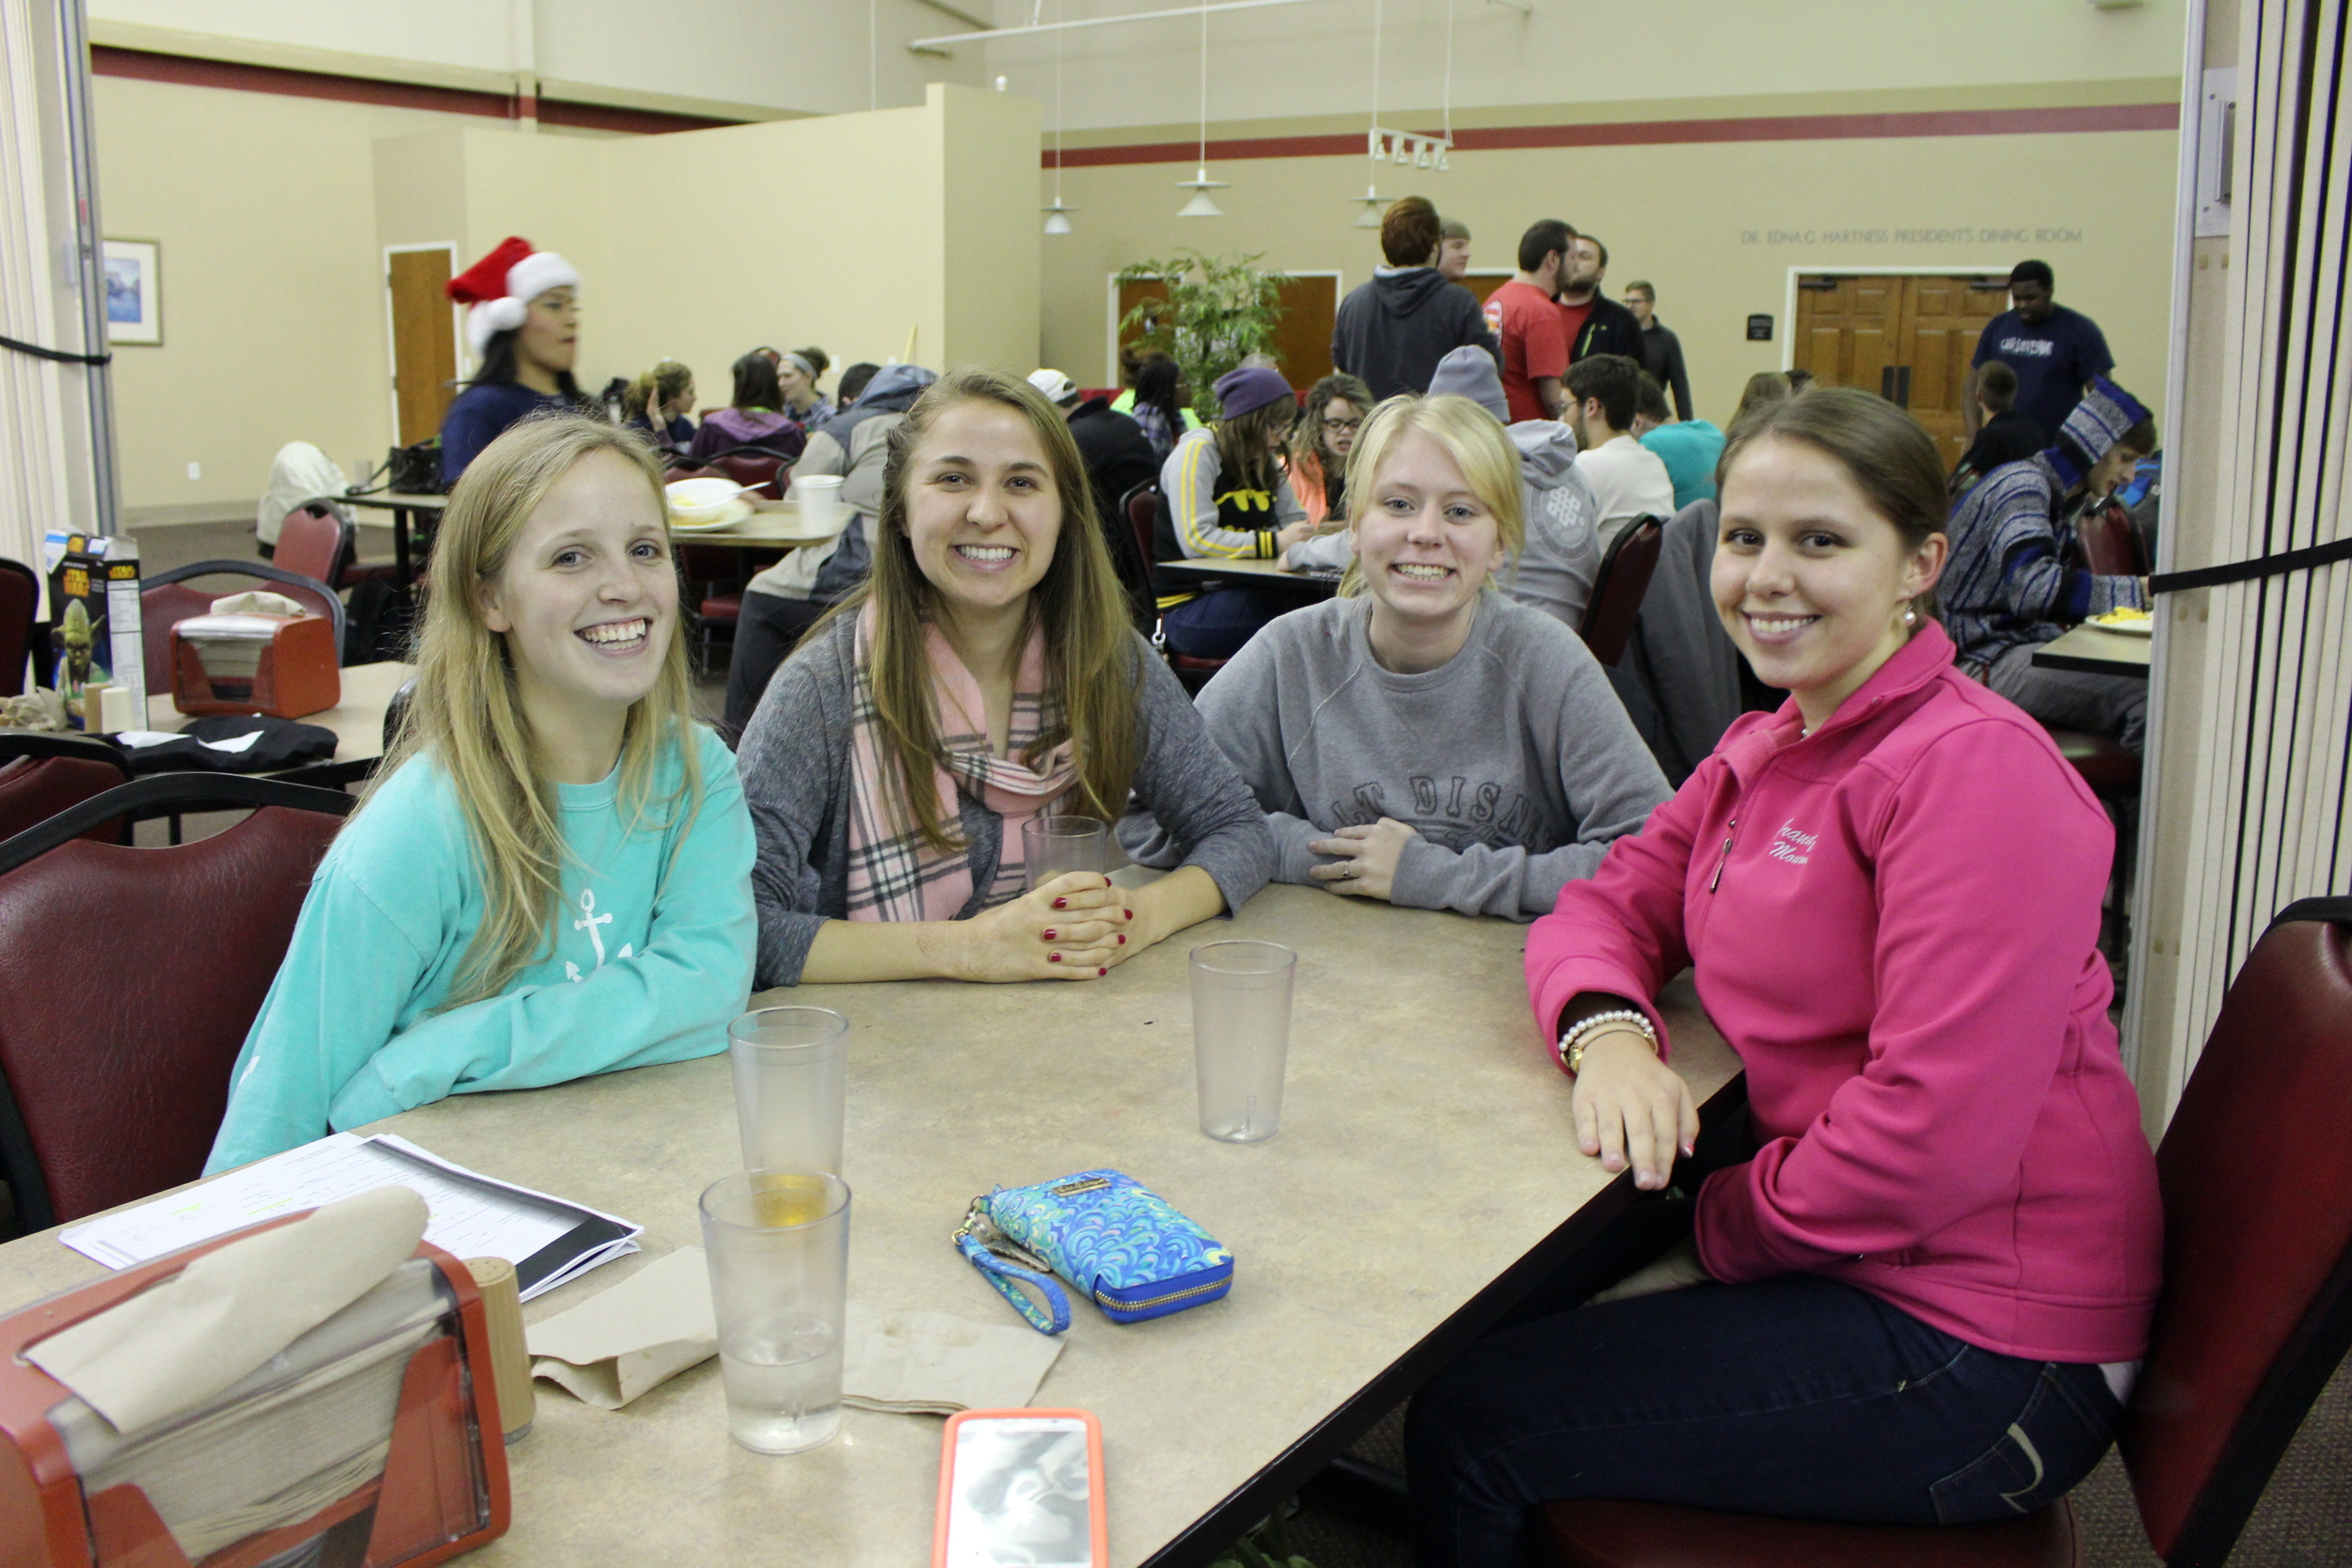 Bailey Stewart, Jori Edgington, Jessie Prescott and Rachel Wade are ready to take on exams after enjoying the pancakes and breakfast.